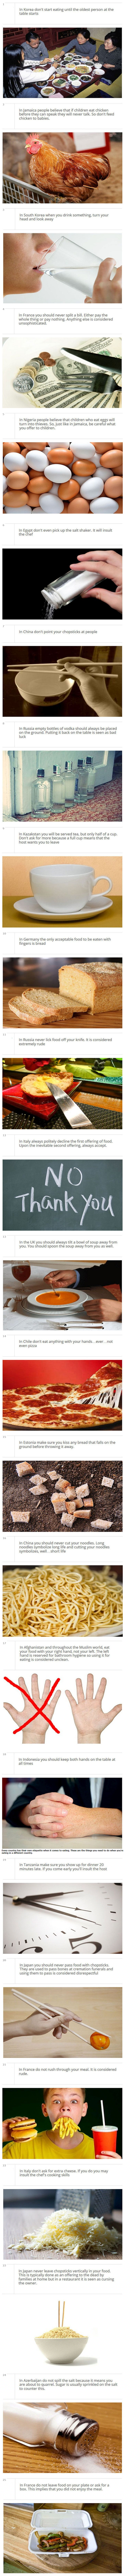 Eating Etiquette Around the World